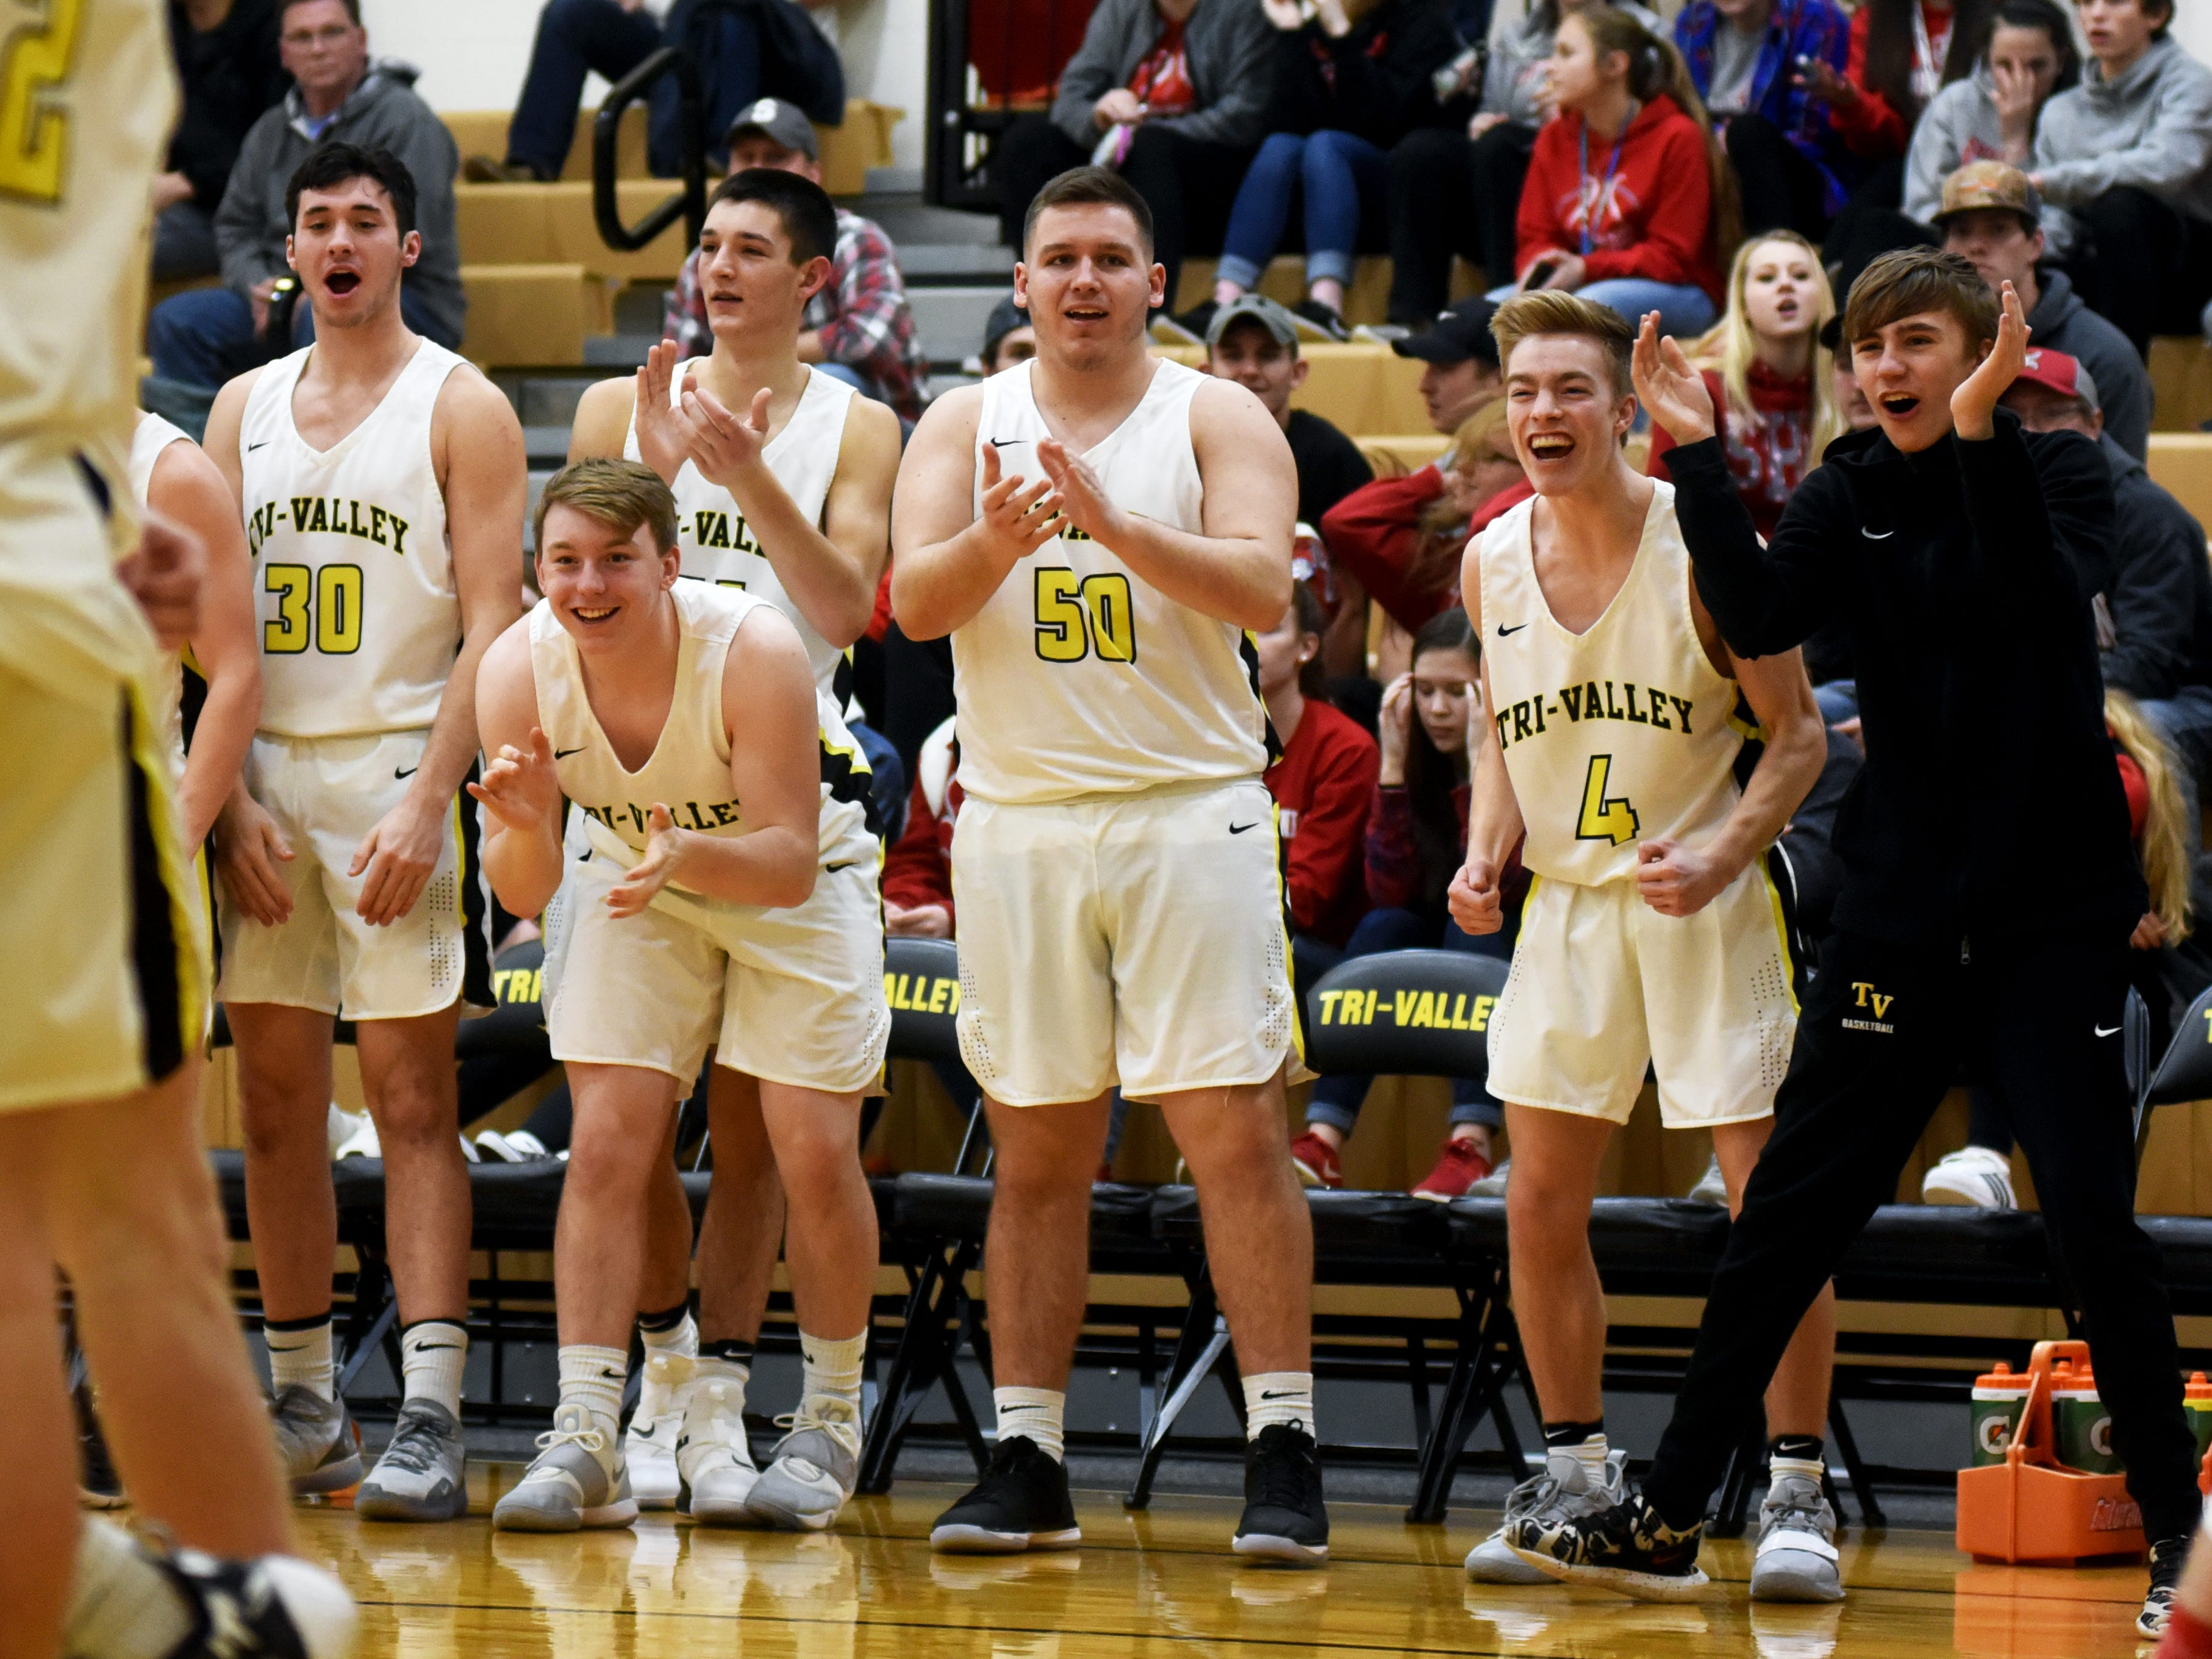 Tri-Valley's bench gets wound up after Ty Smith converts an off-balanced layup on Friday night in Dresden.